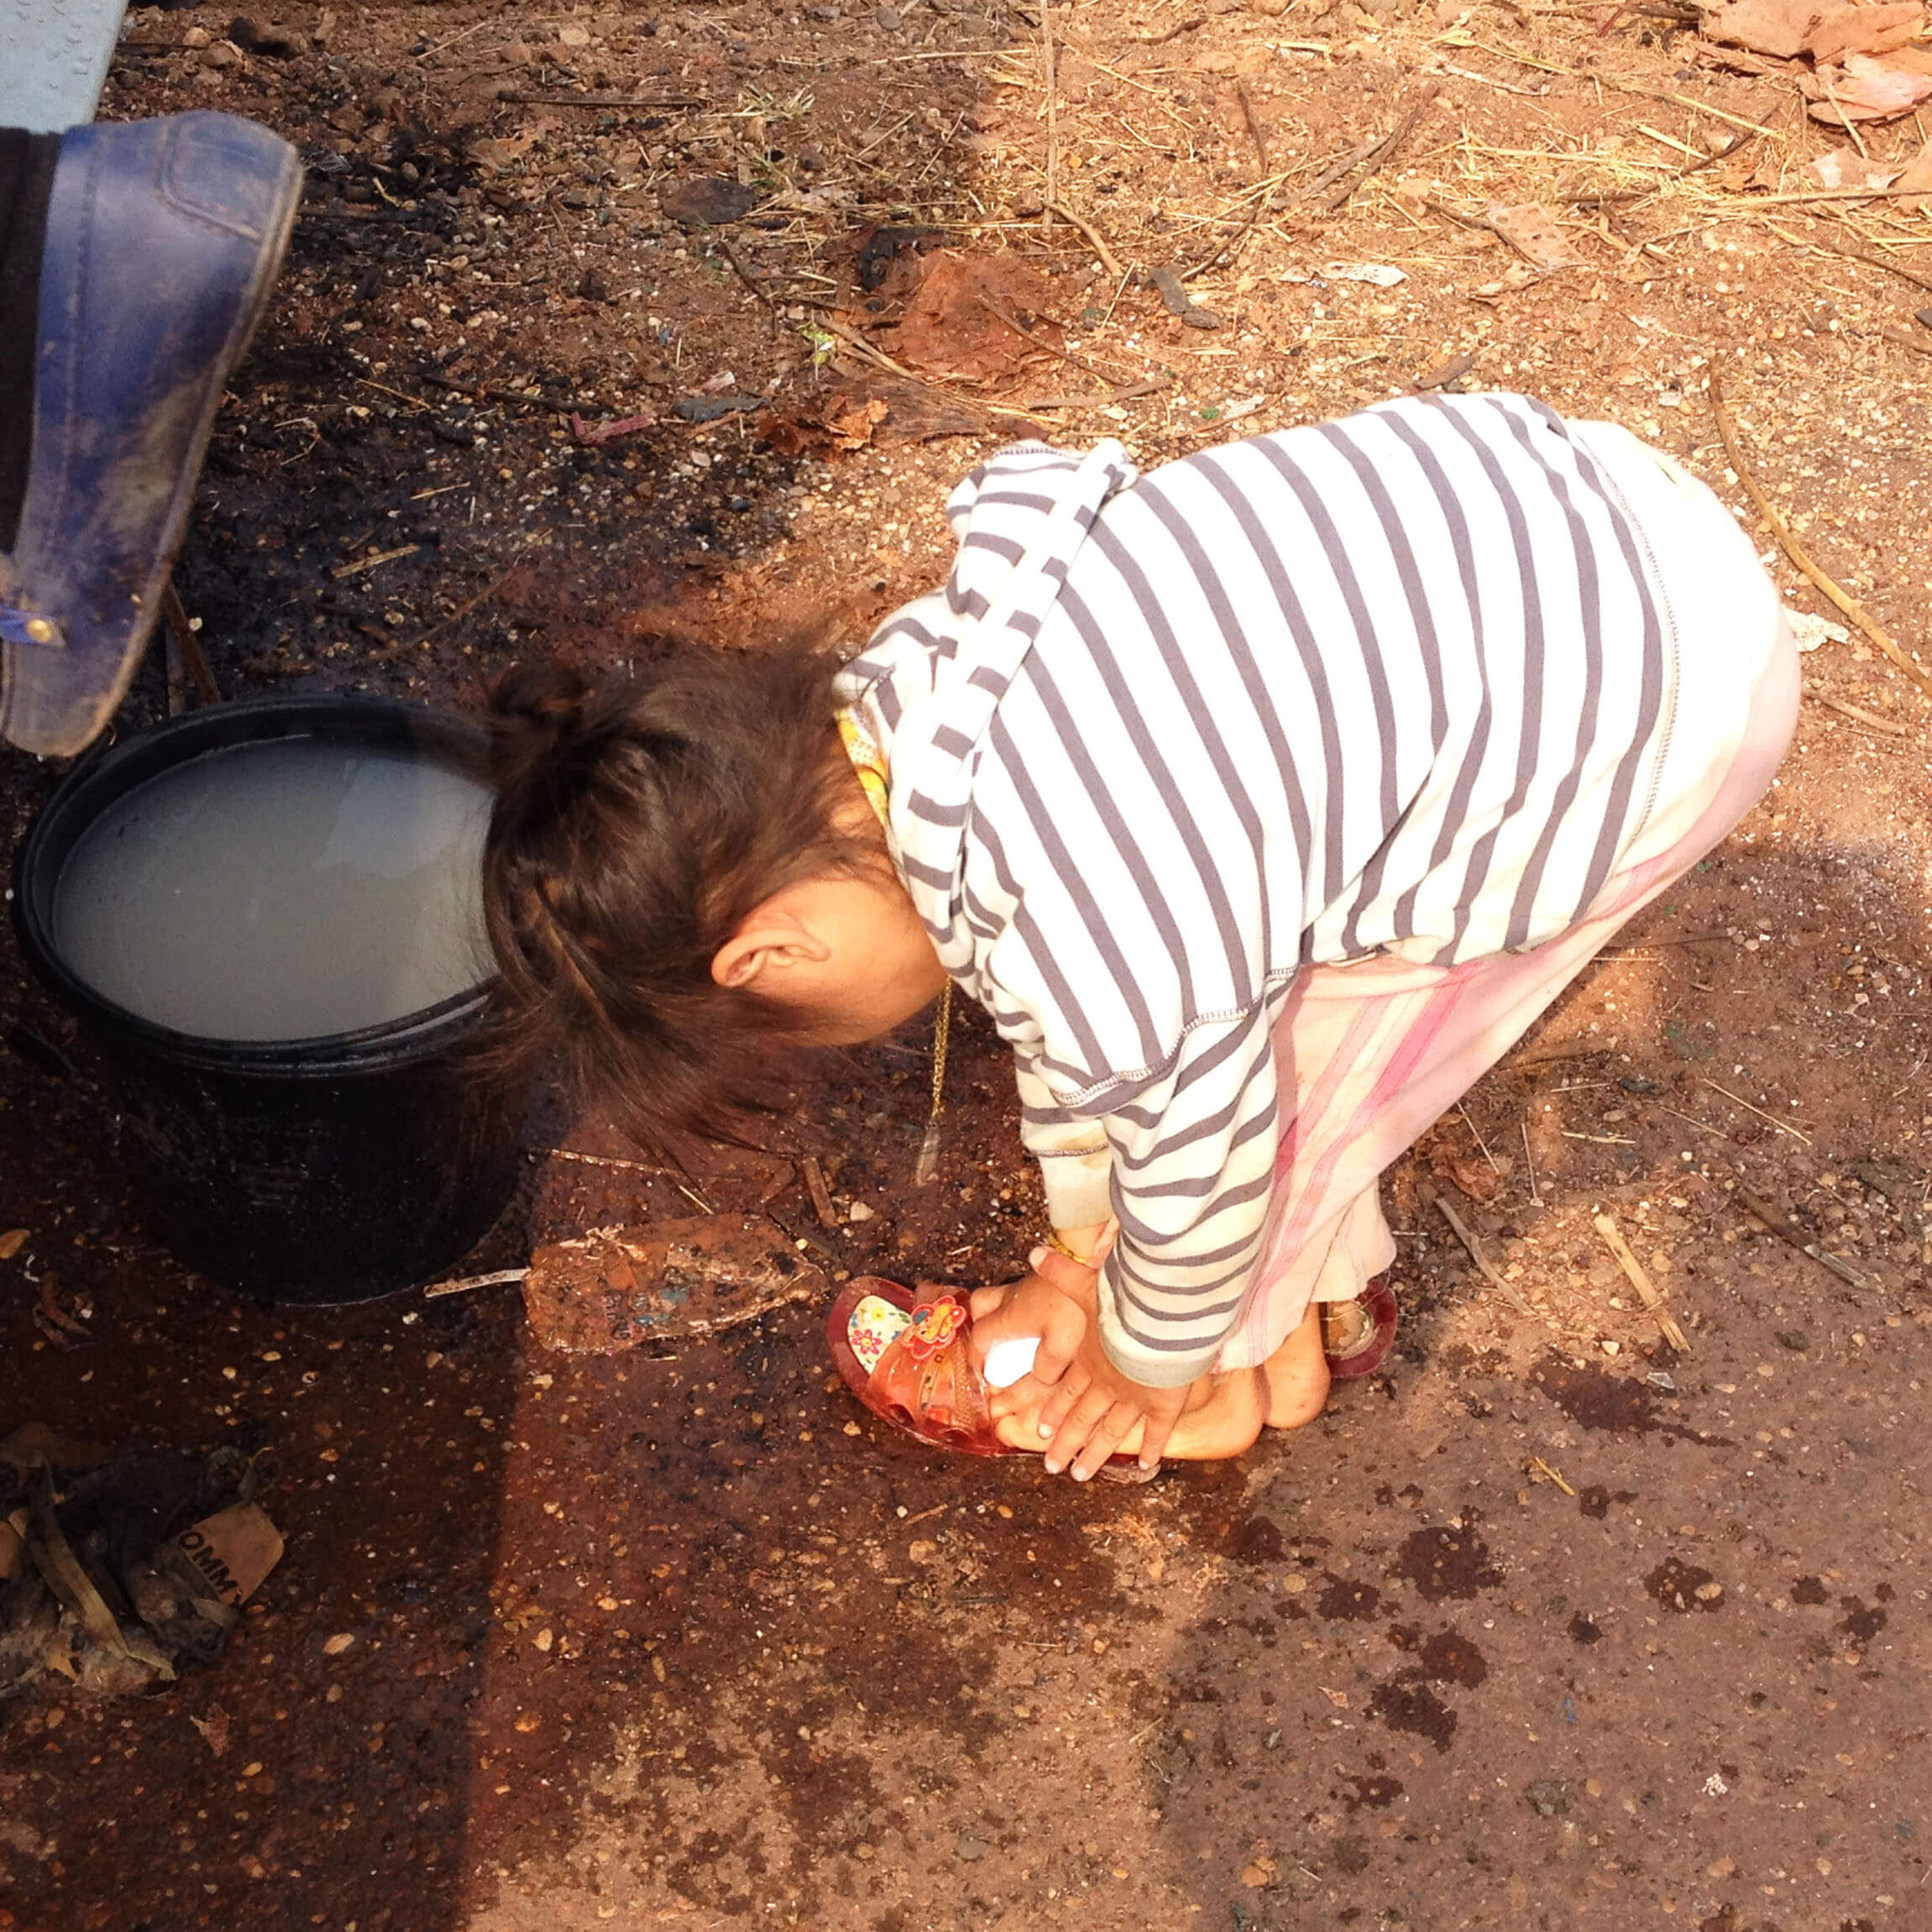 A young girl washes her feet with water and soap provided by the mobile school.